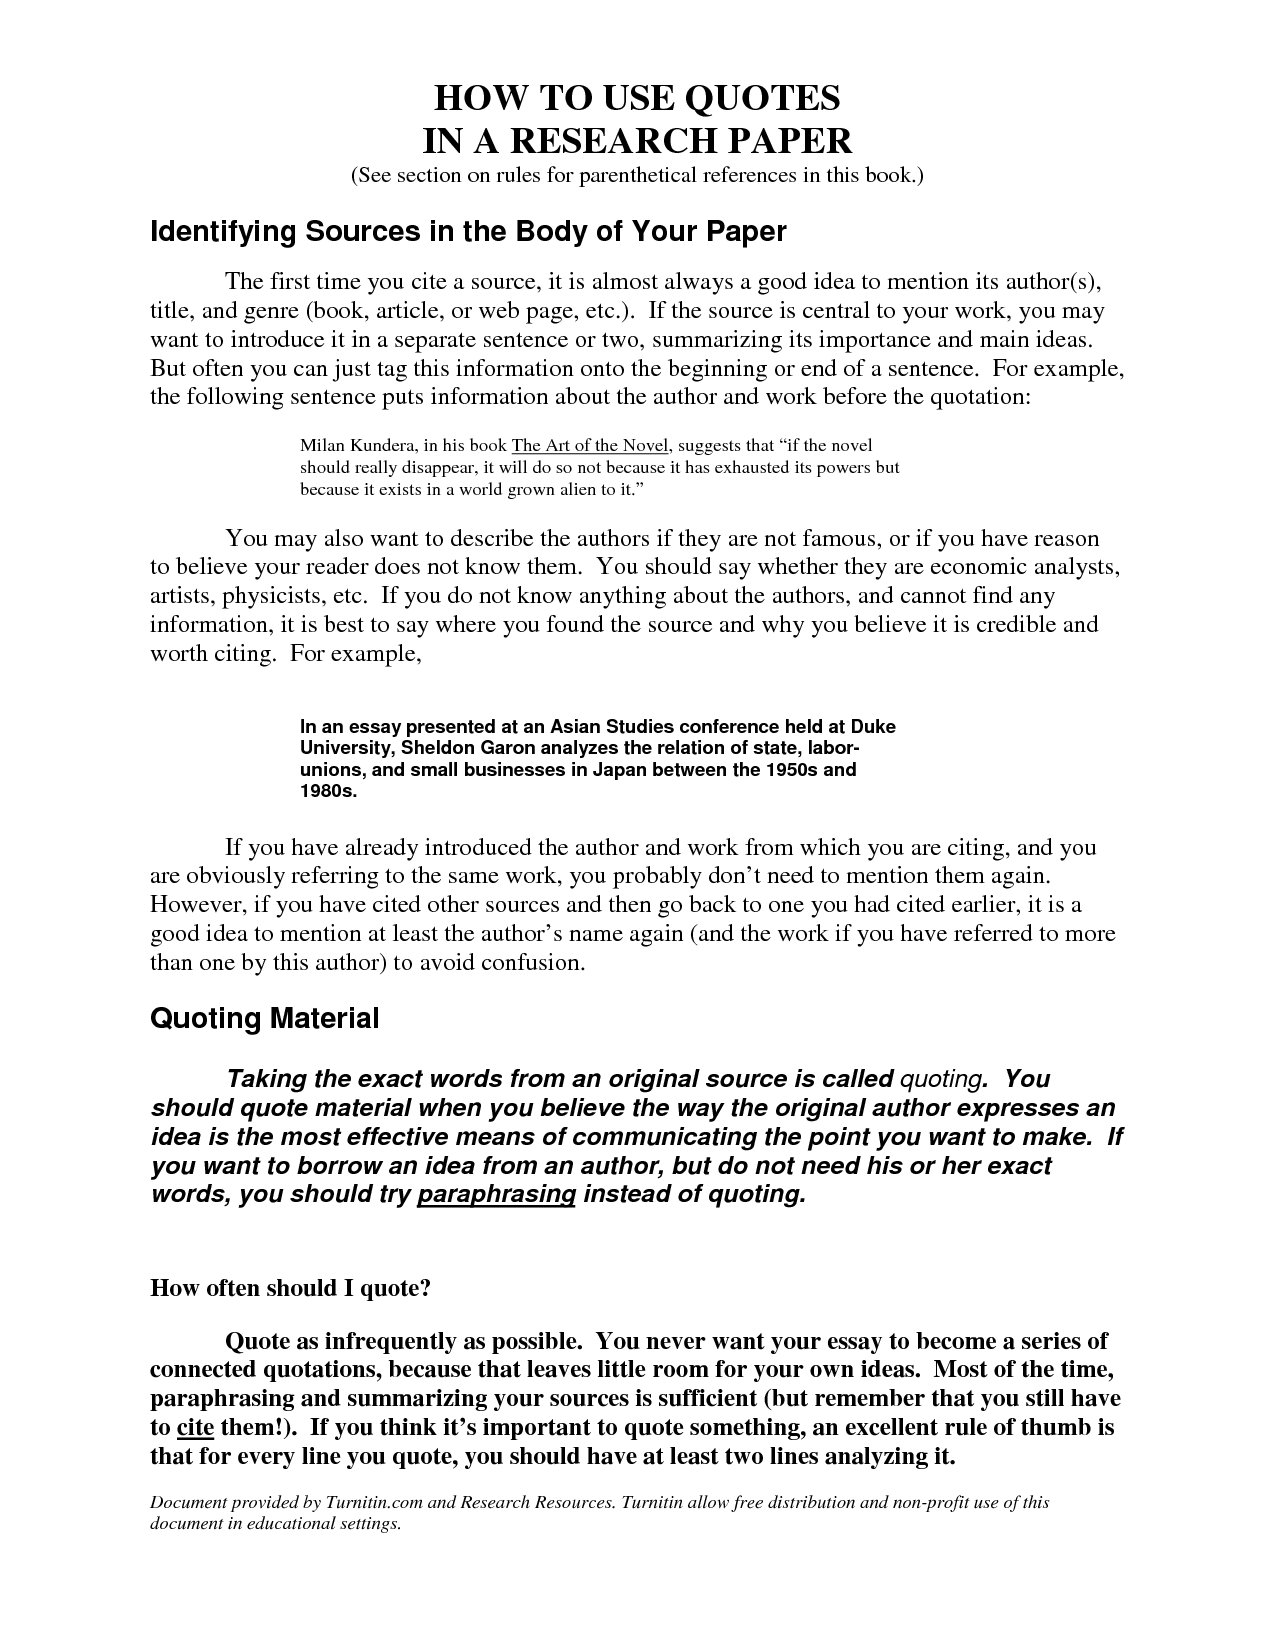 quotes essay using quotes at the beginning of an essay ipgprojecom